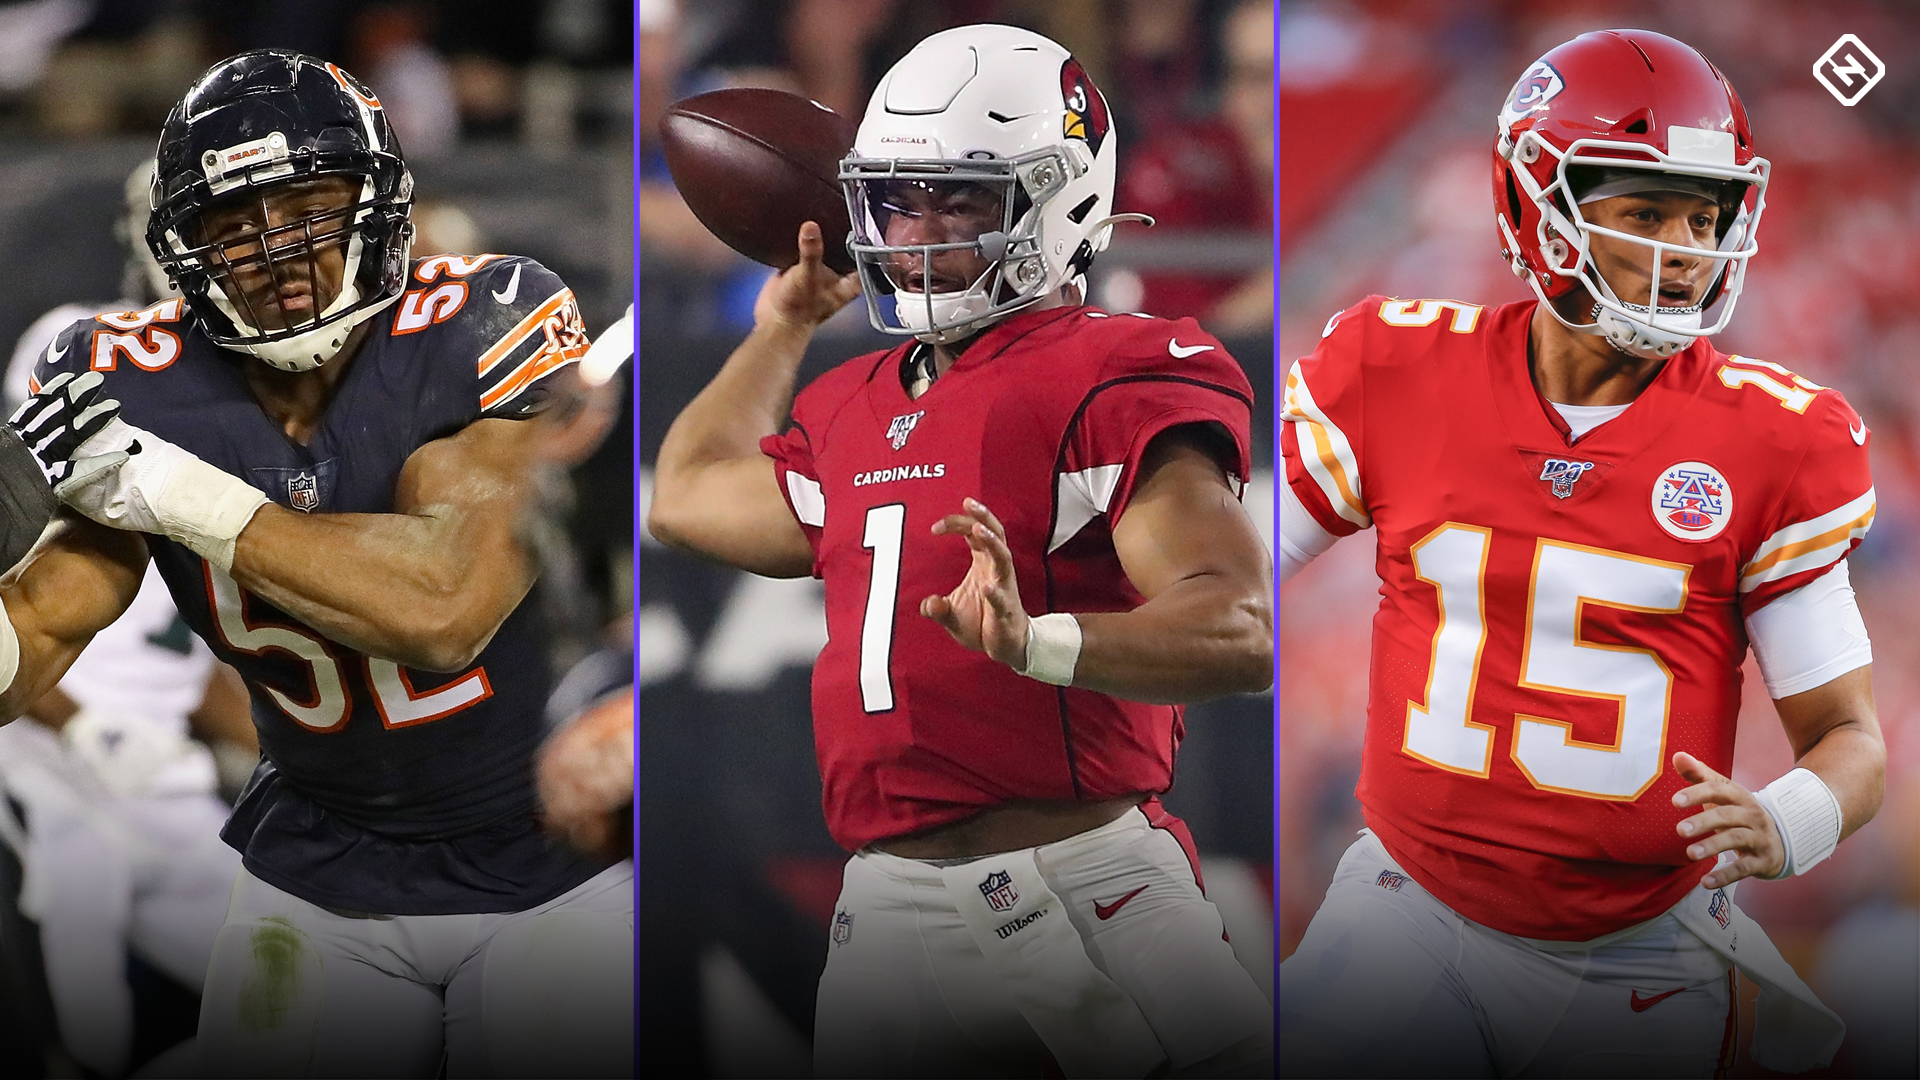 a0a024c0 NFL preseason schedule Week 2: What games are on today? TV channels ...